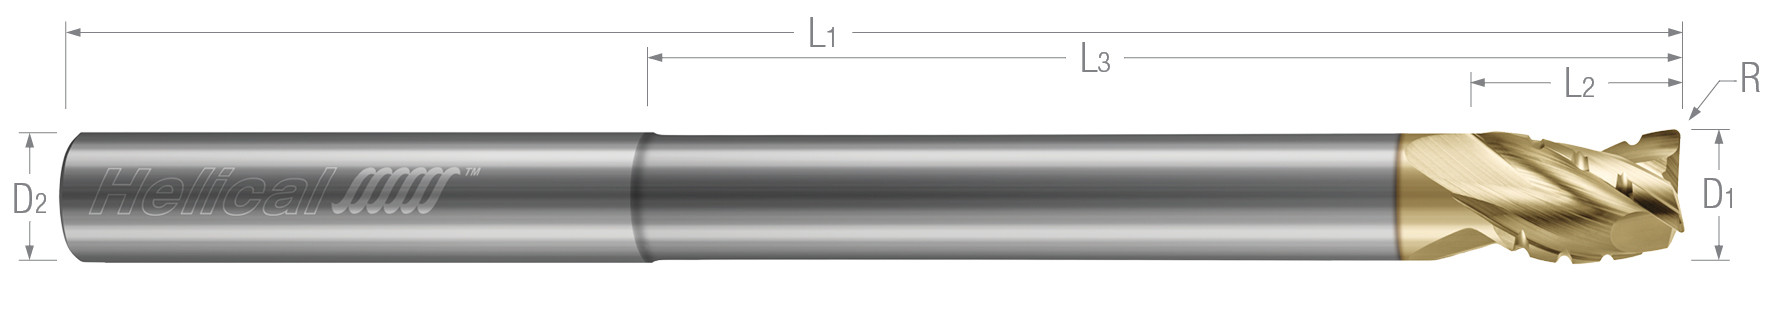 3 Flute - Corner Radius - 35° Helix - Variable Pitch - Chipbreaker Rougher - Reduced Neck